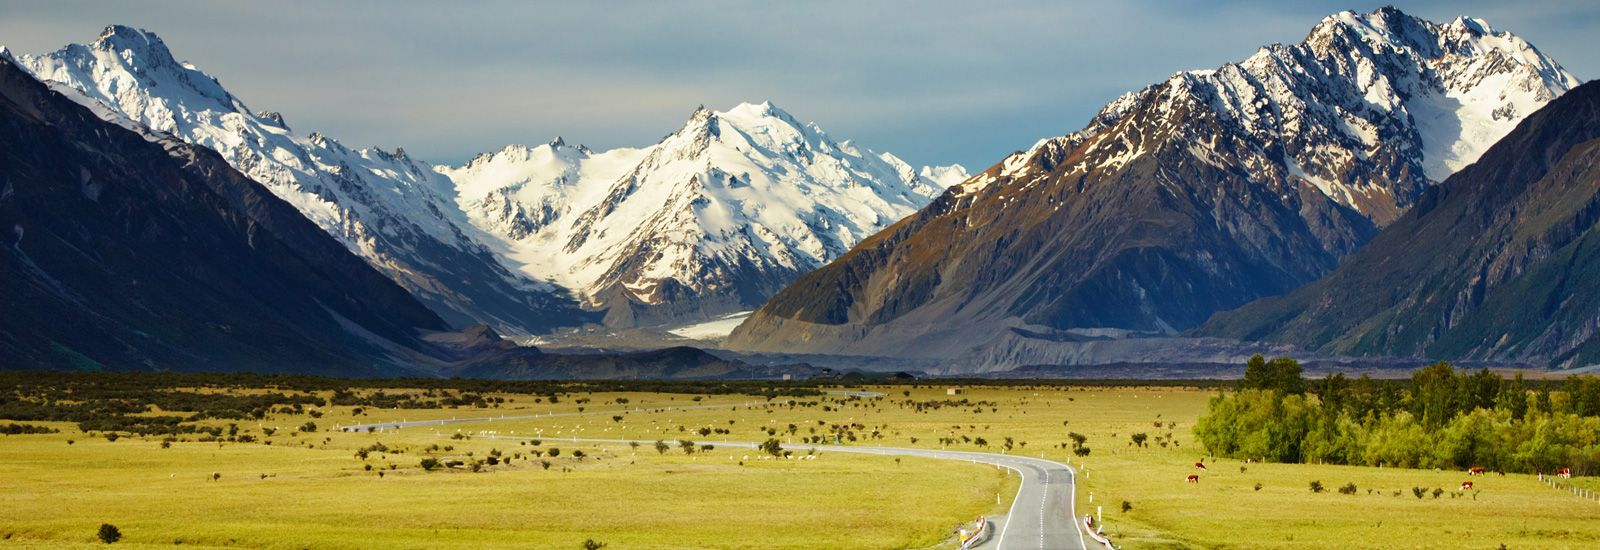 The Southern Alps mountains in New Zealand